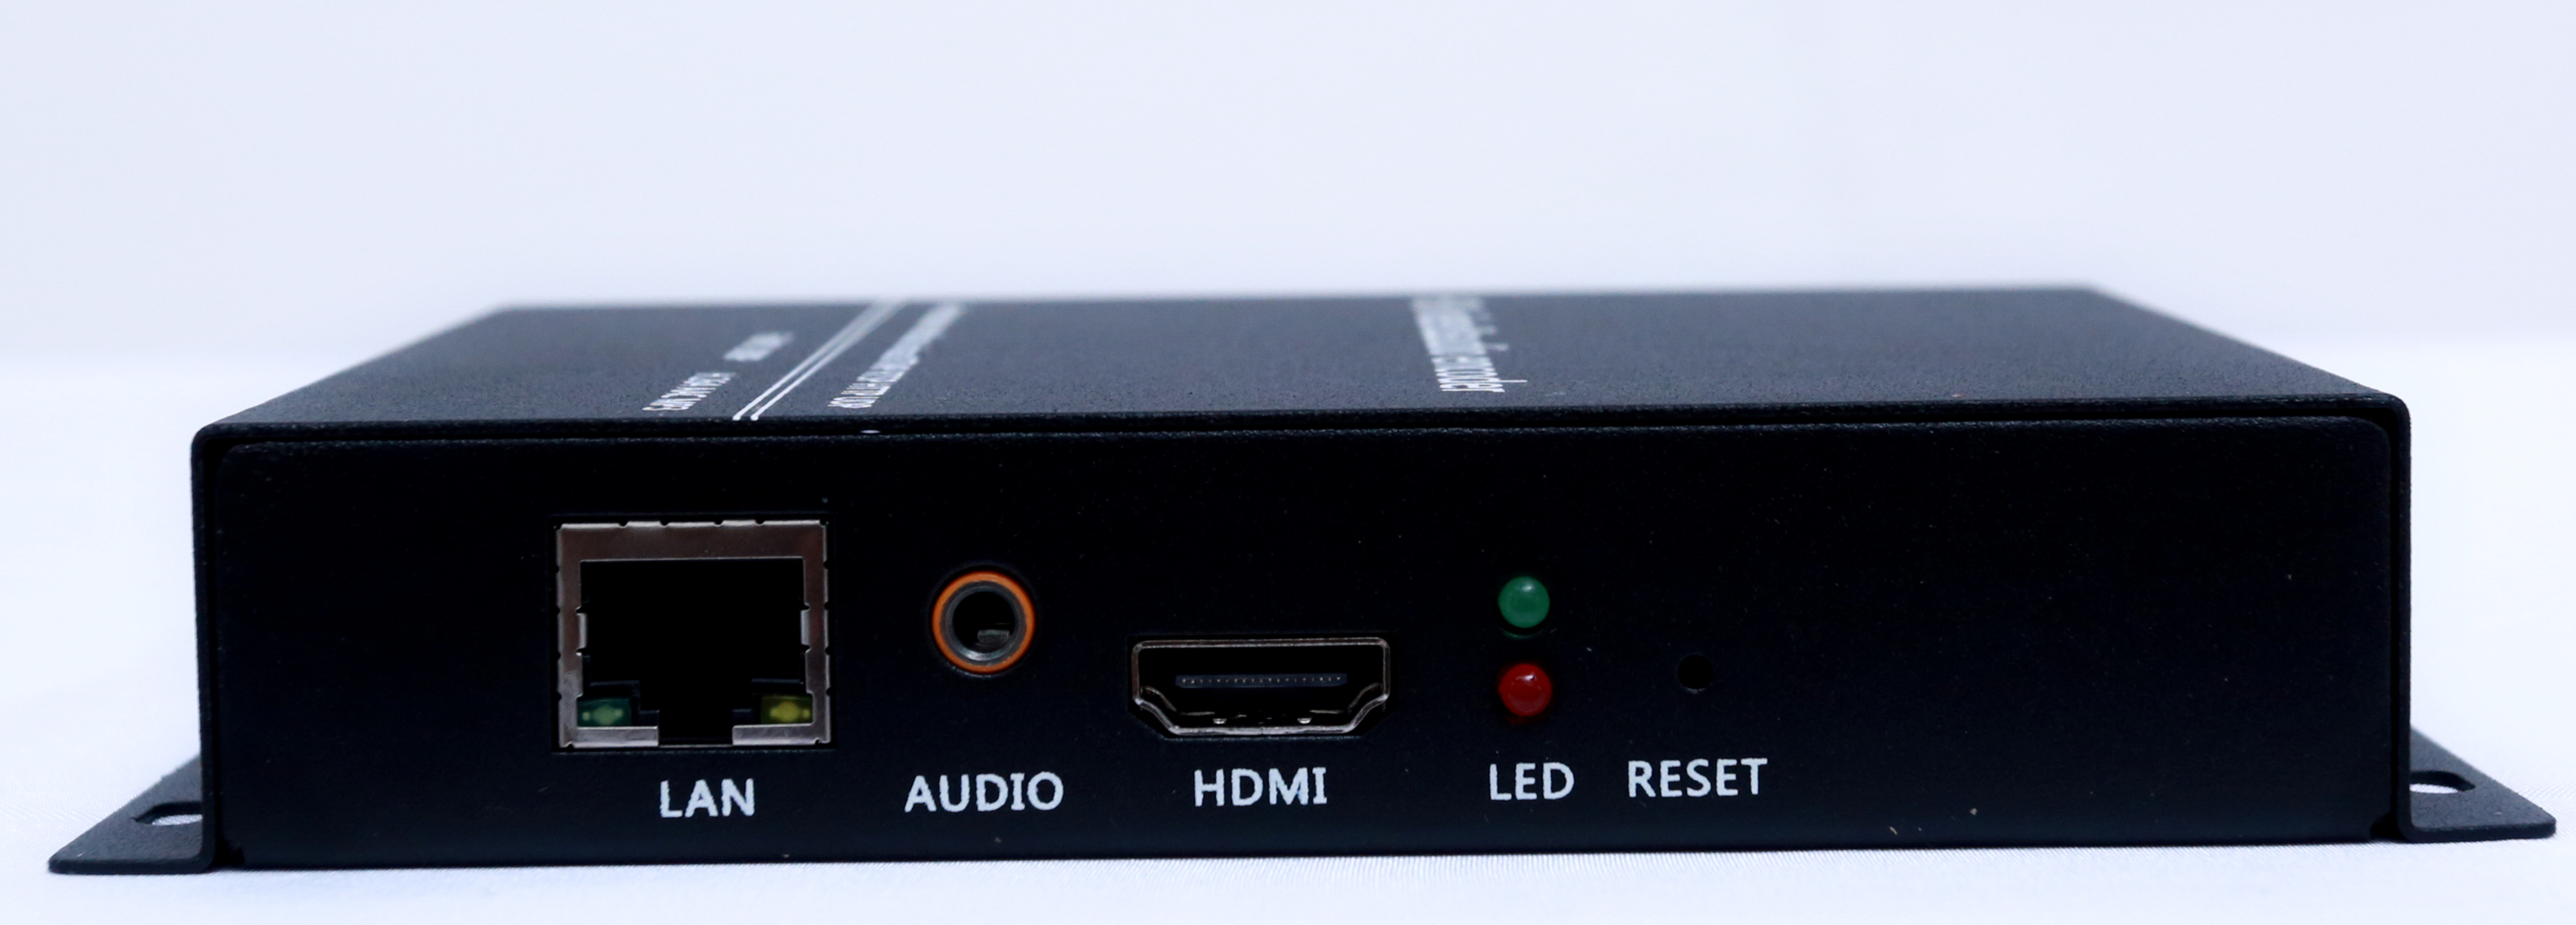 HDMI Encoder Live Streaming Cost-effective Multi Streaming Streaming HD Live Streamer Streaming